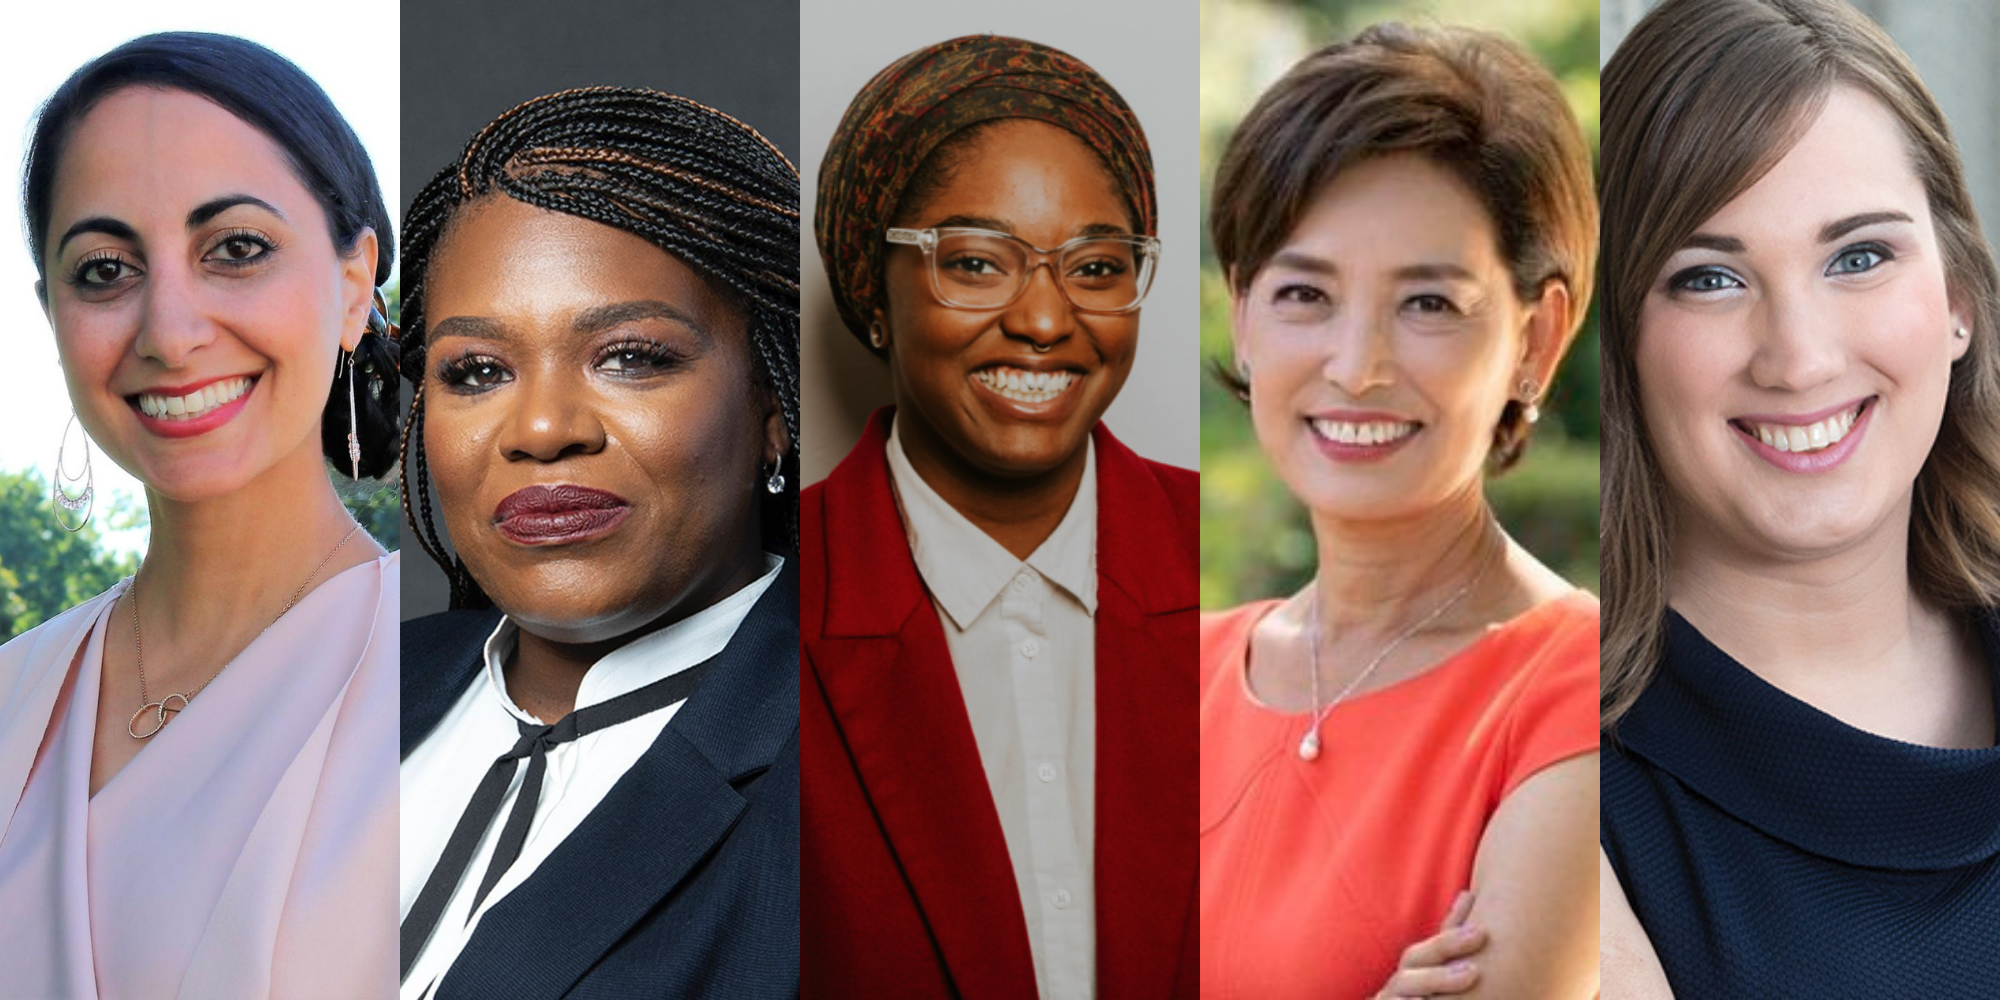 The womxn who just made history ignite national election 2020